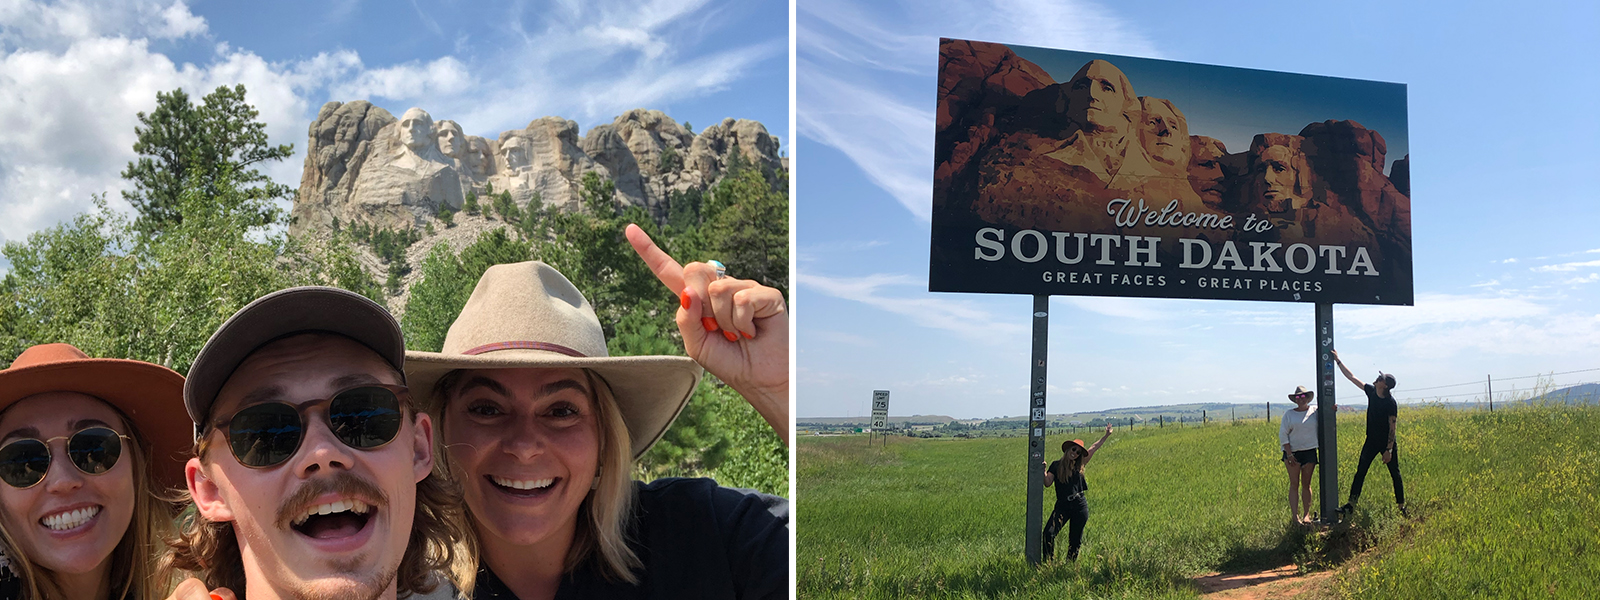 In front of Mount Rushmore, South Dakota. Group under large South Dakota sign.